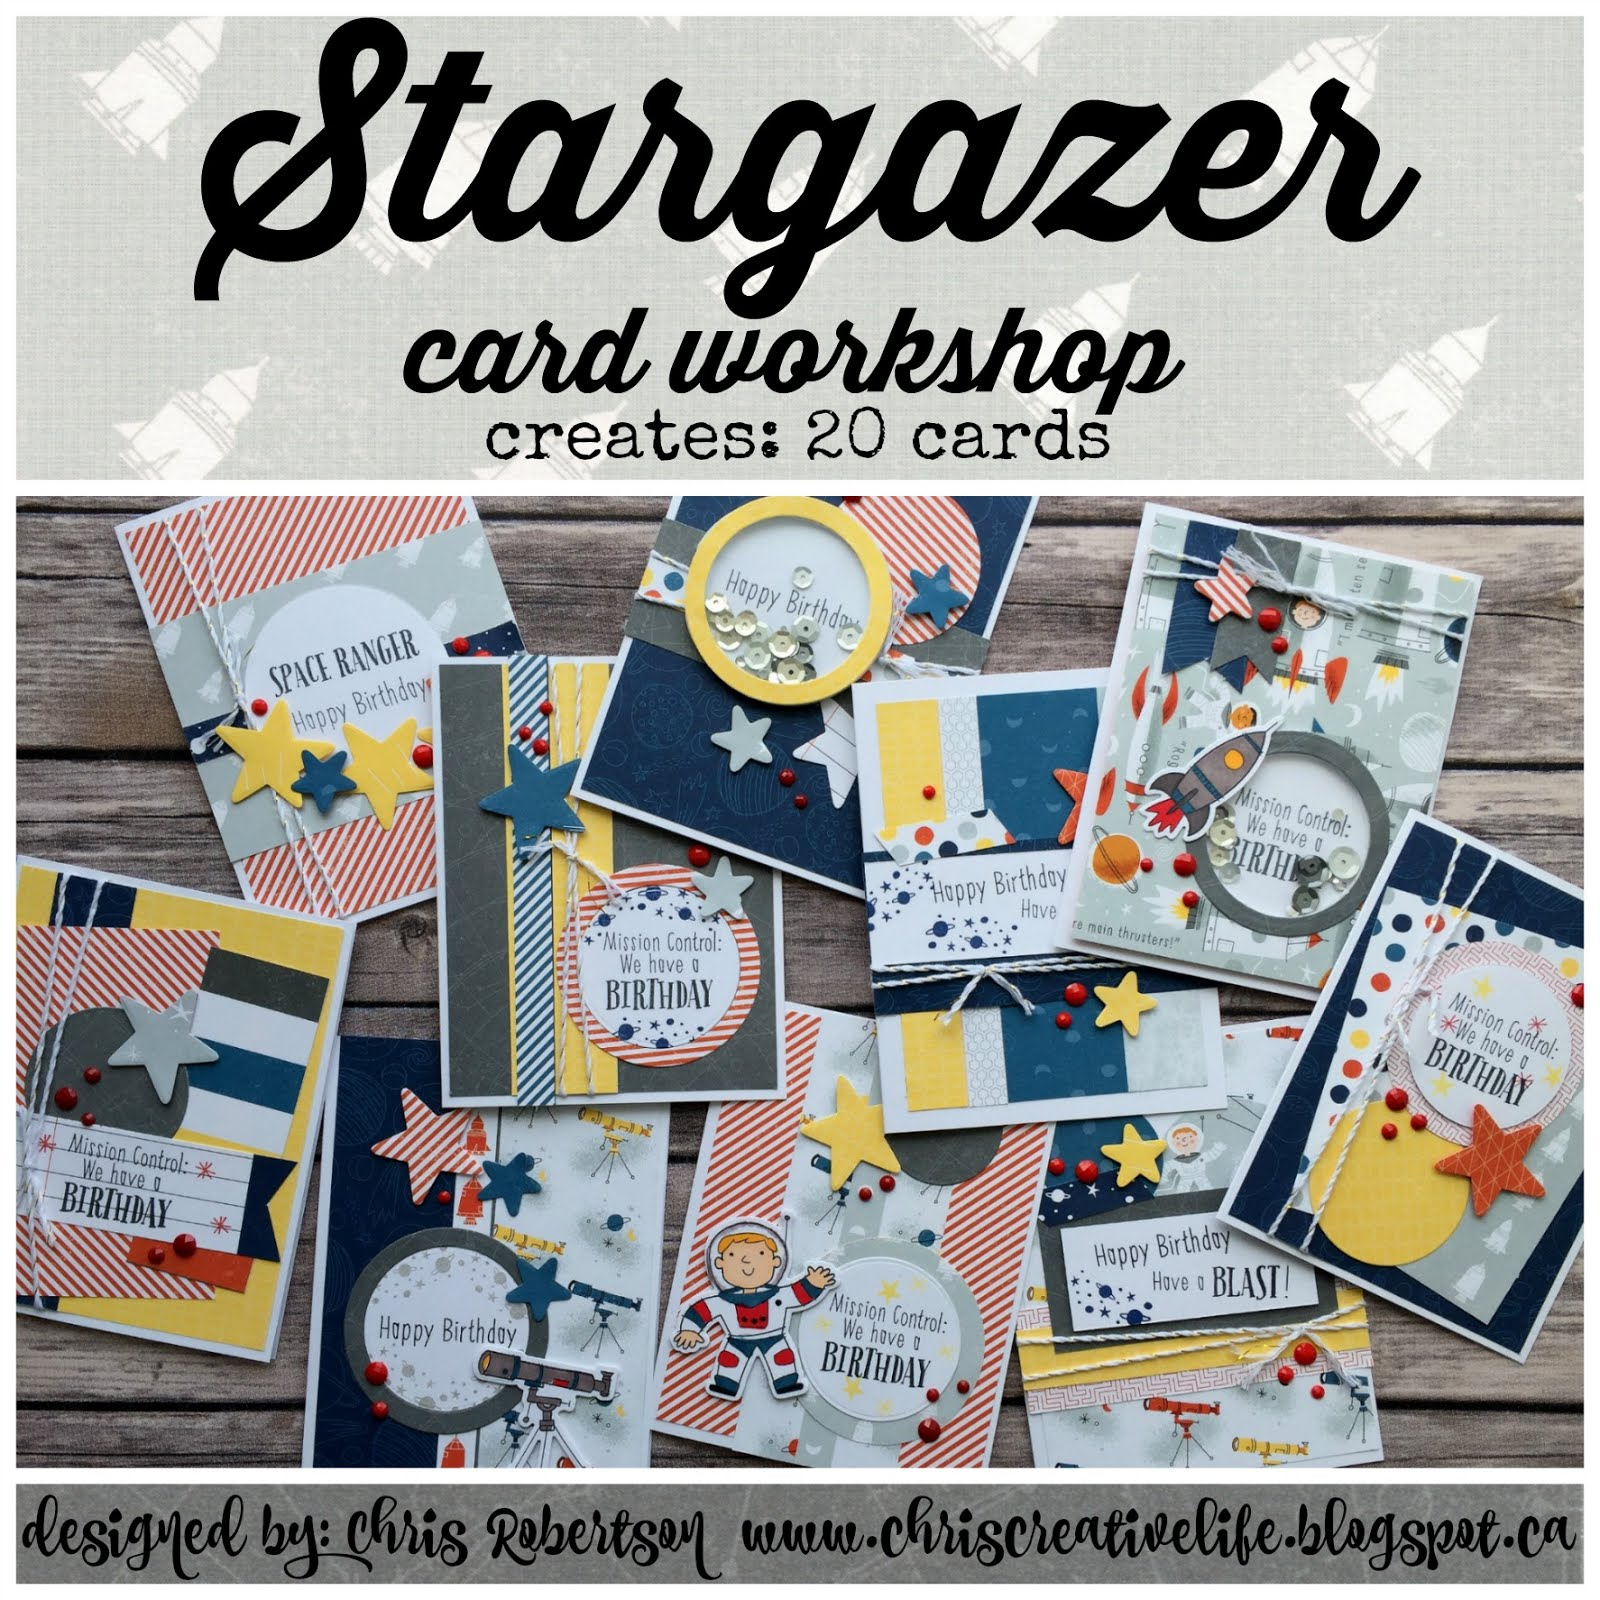 Stargazer Cardmaking Workshop